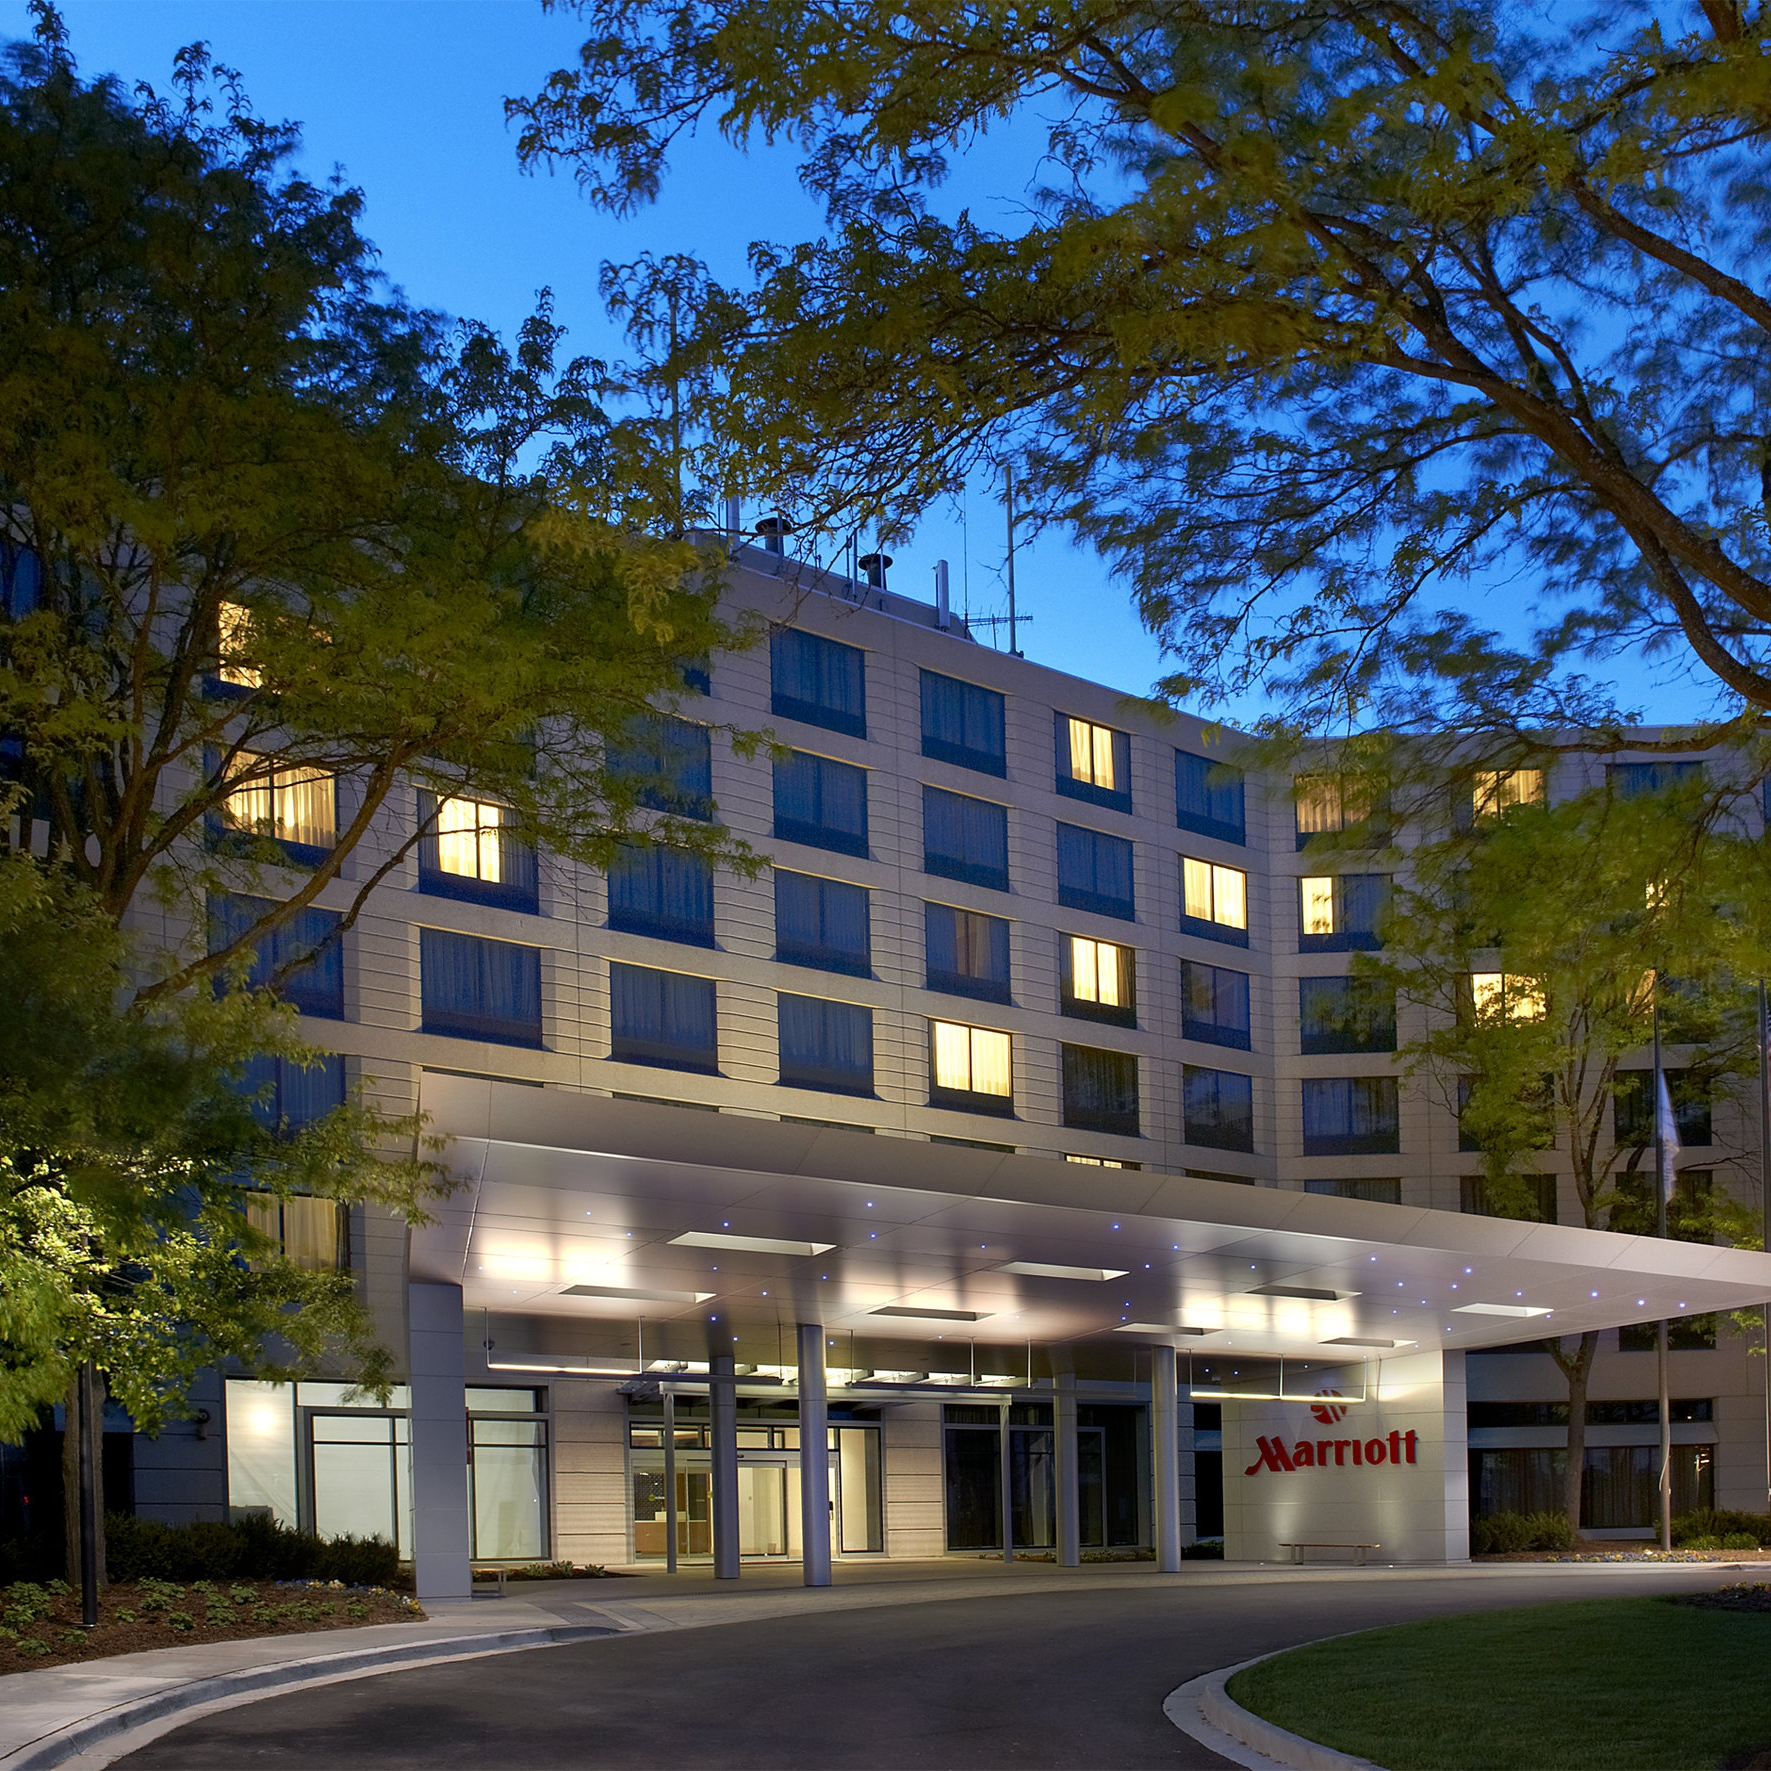 Marriott Chicago Naperville Hotel